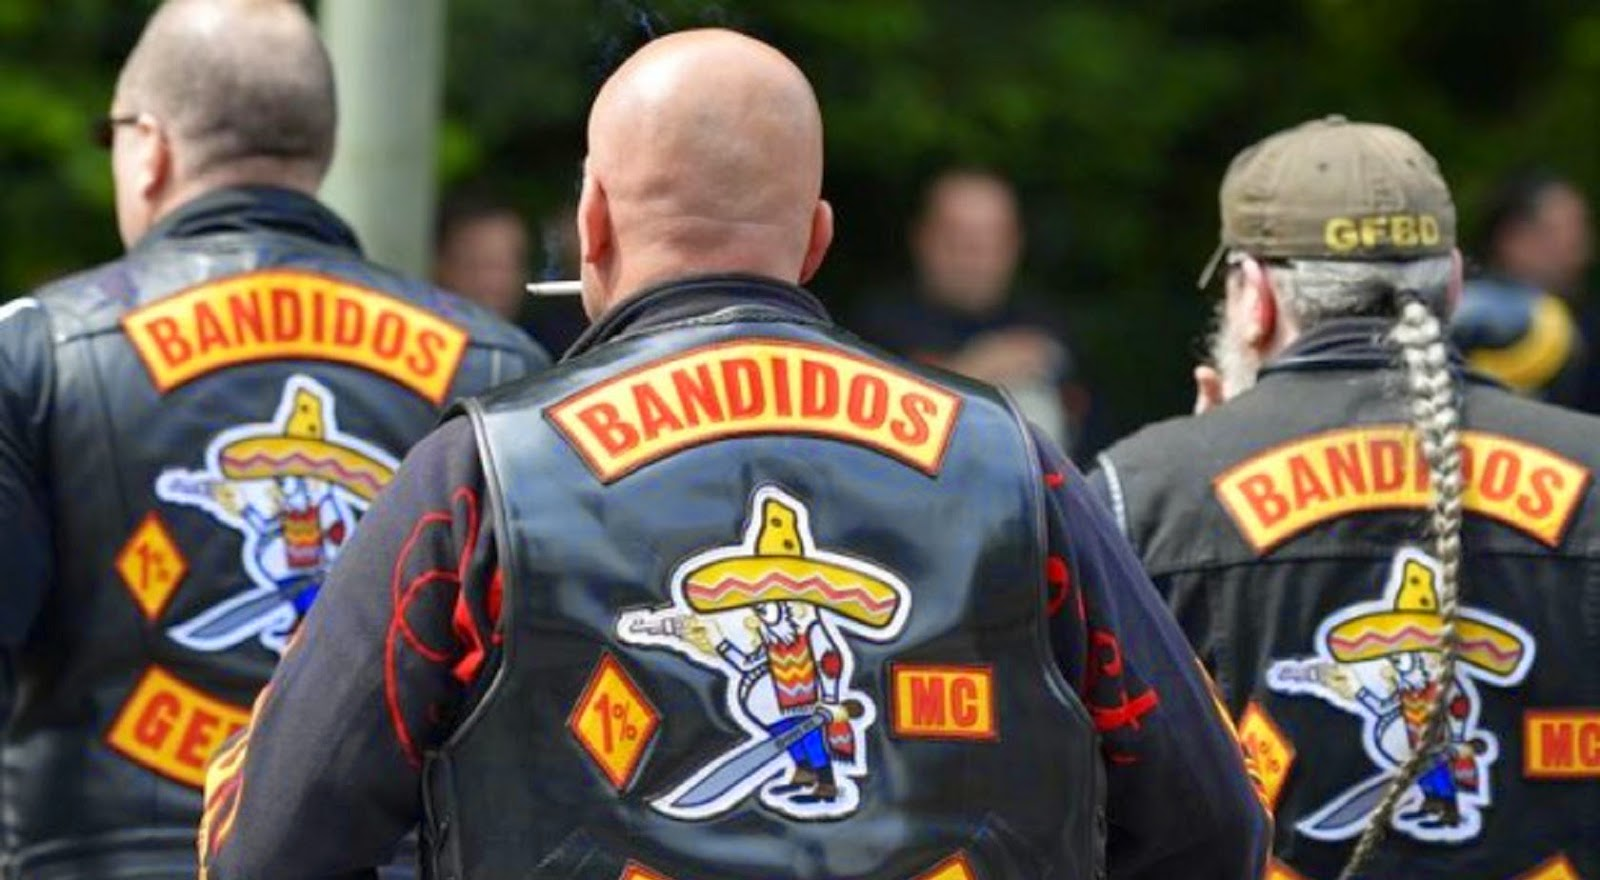 Bikers Waco Texas What Really Happened Bandidos jpg